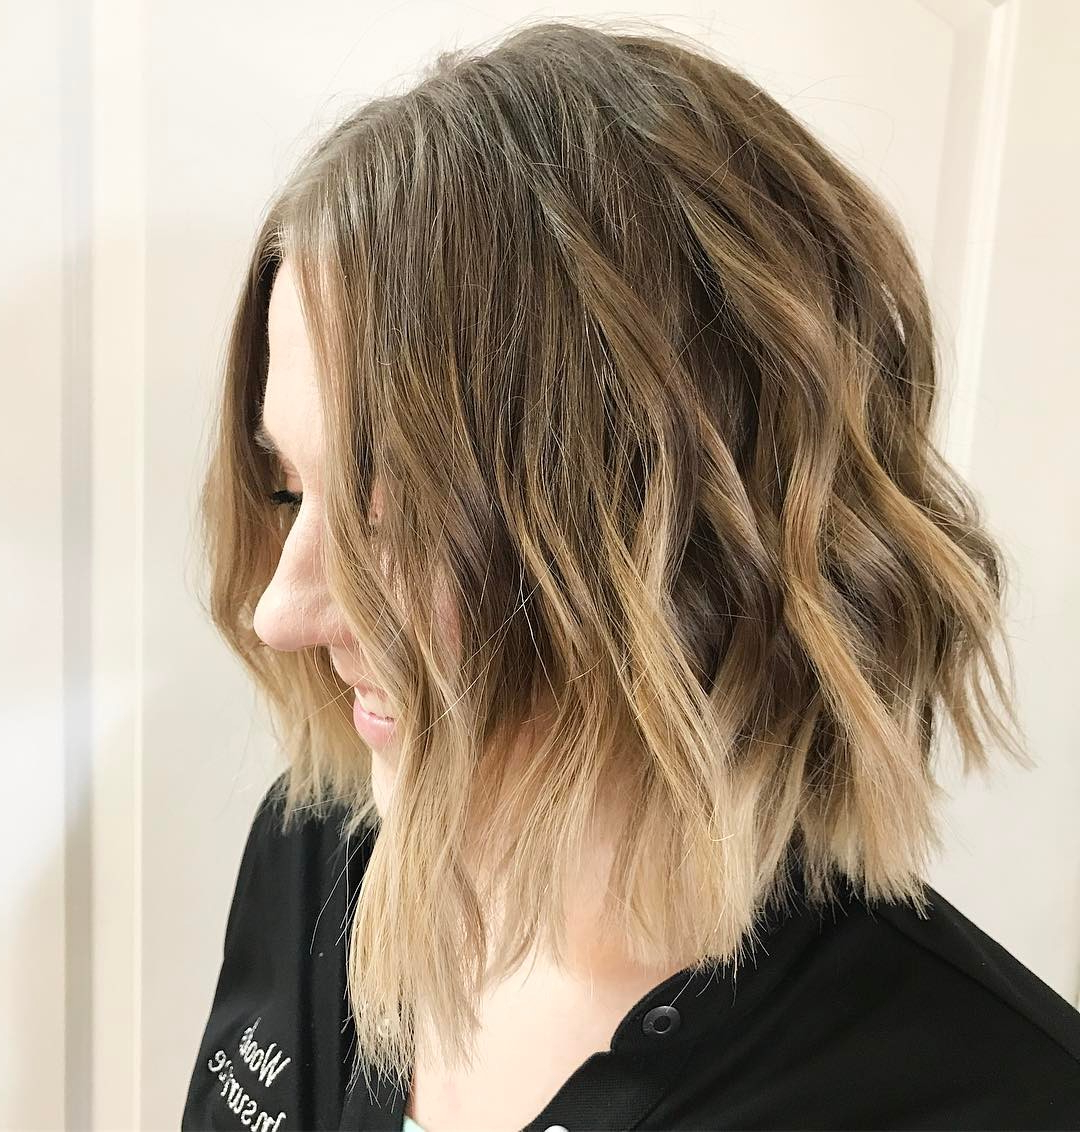 Layered Bob Hairstyles – Modern Short Bob Haircuts With Layers For With Regard To Short Bob Hairstyles With Feathered Layers (View 7 of 20)